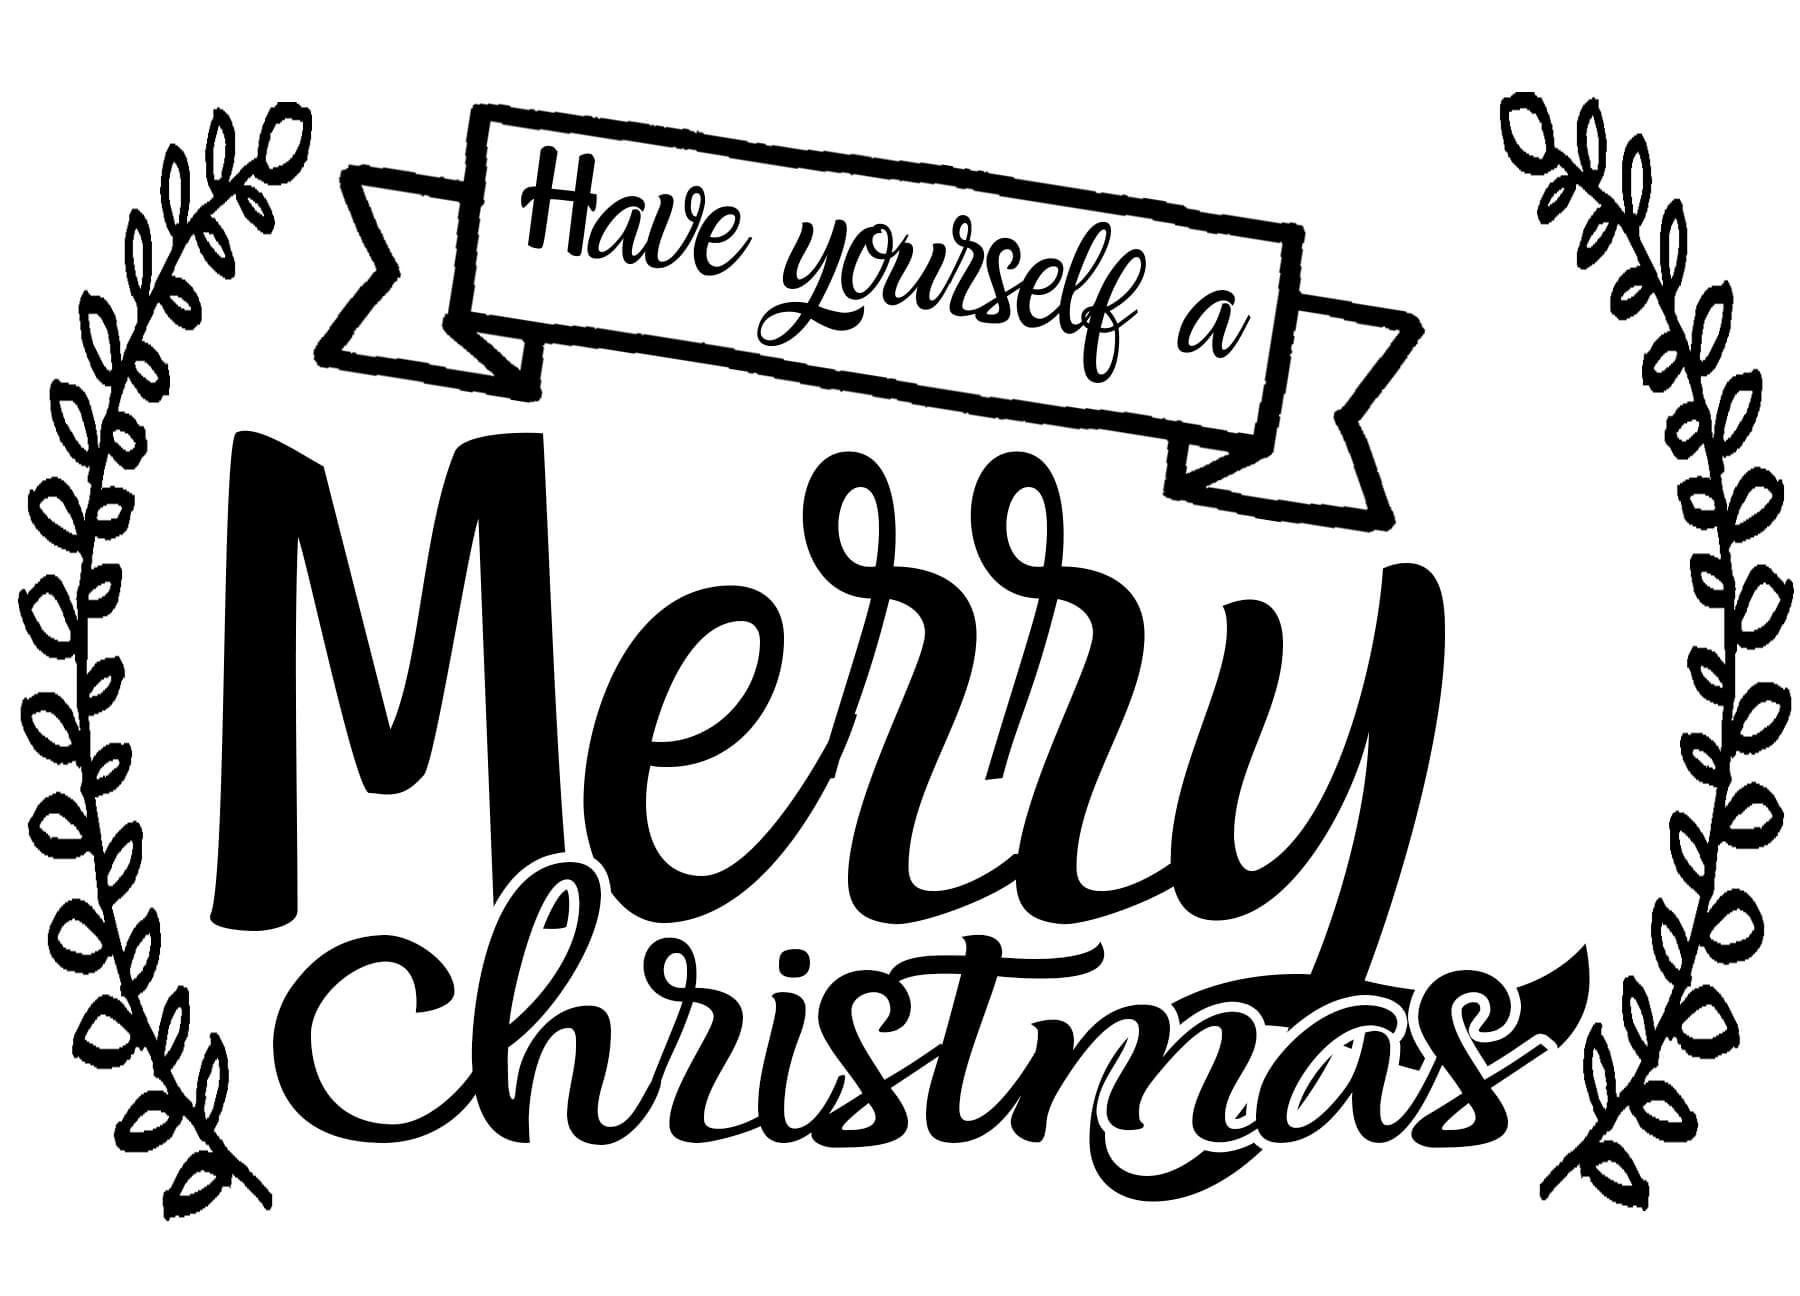 Free Have Yourself a Merry Christmas SVG Christmas svg